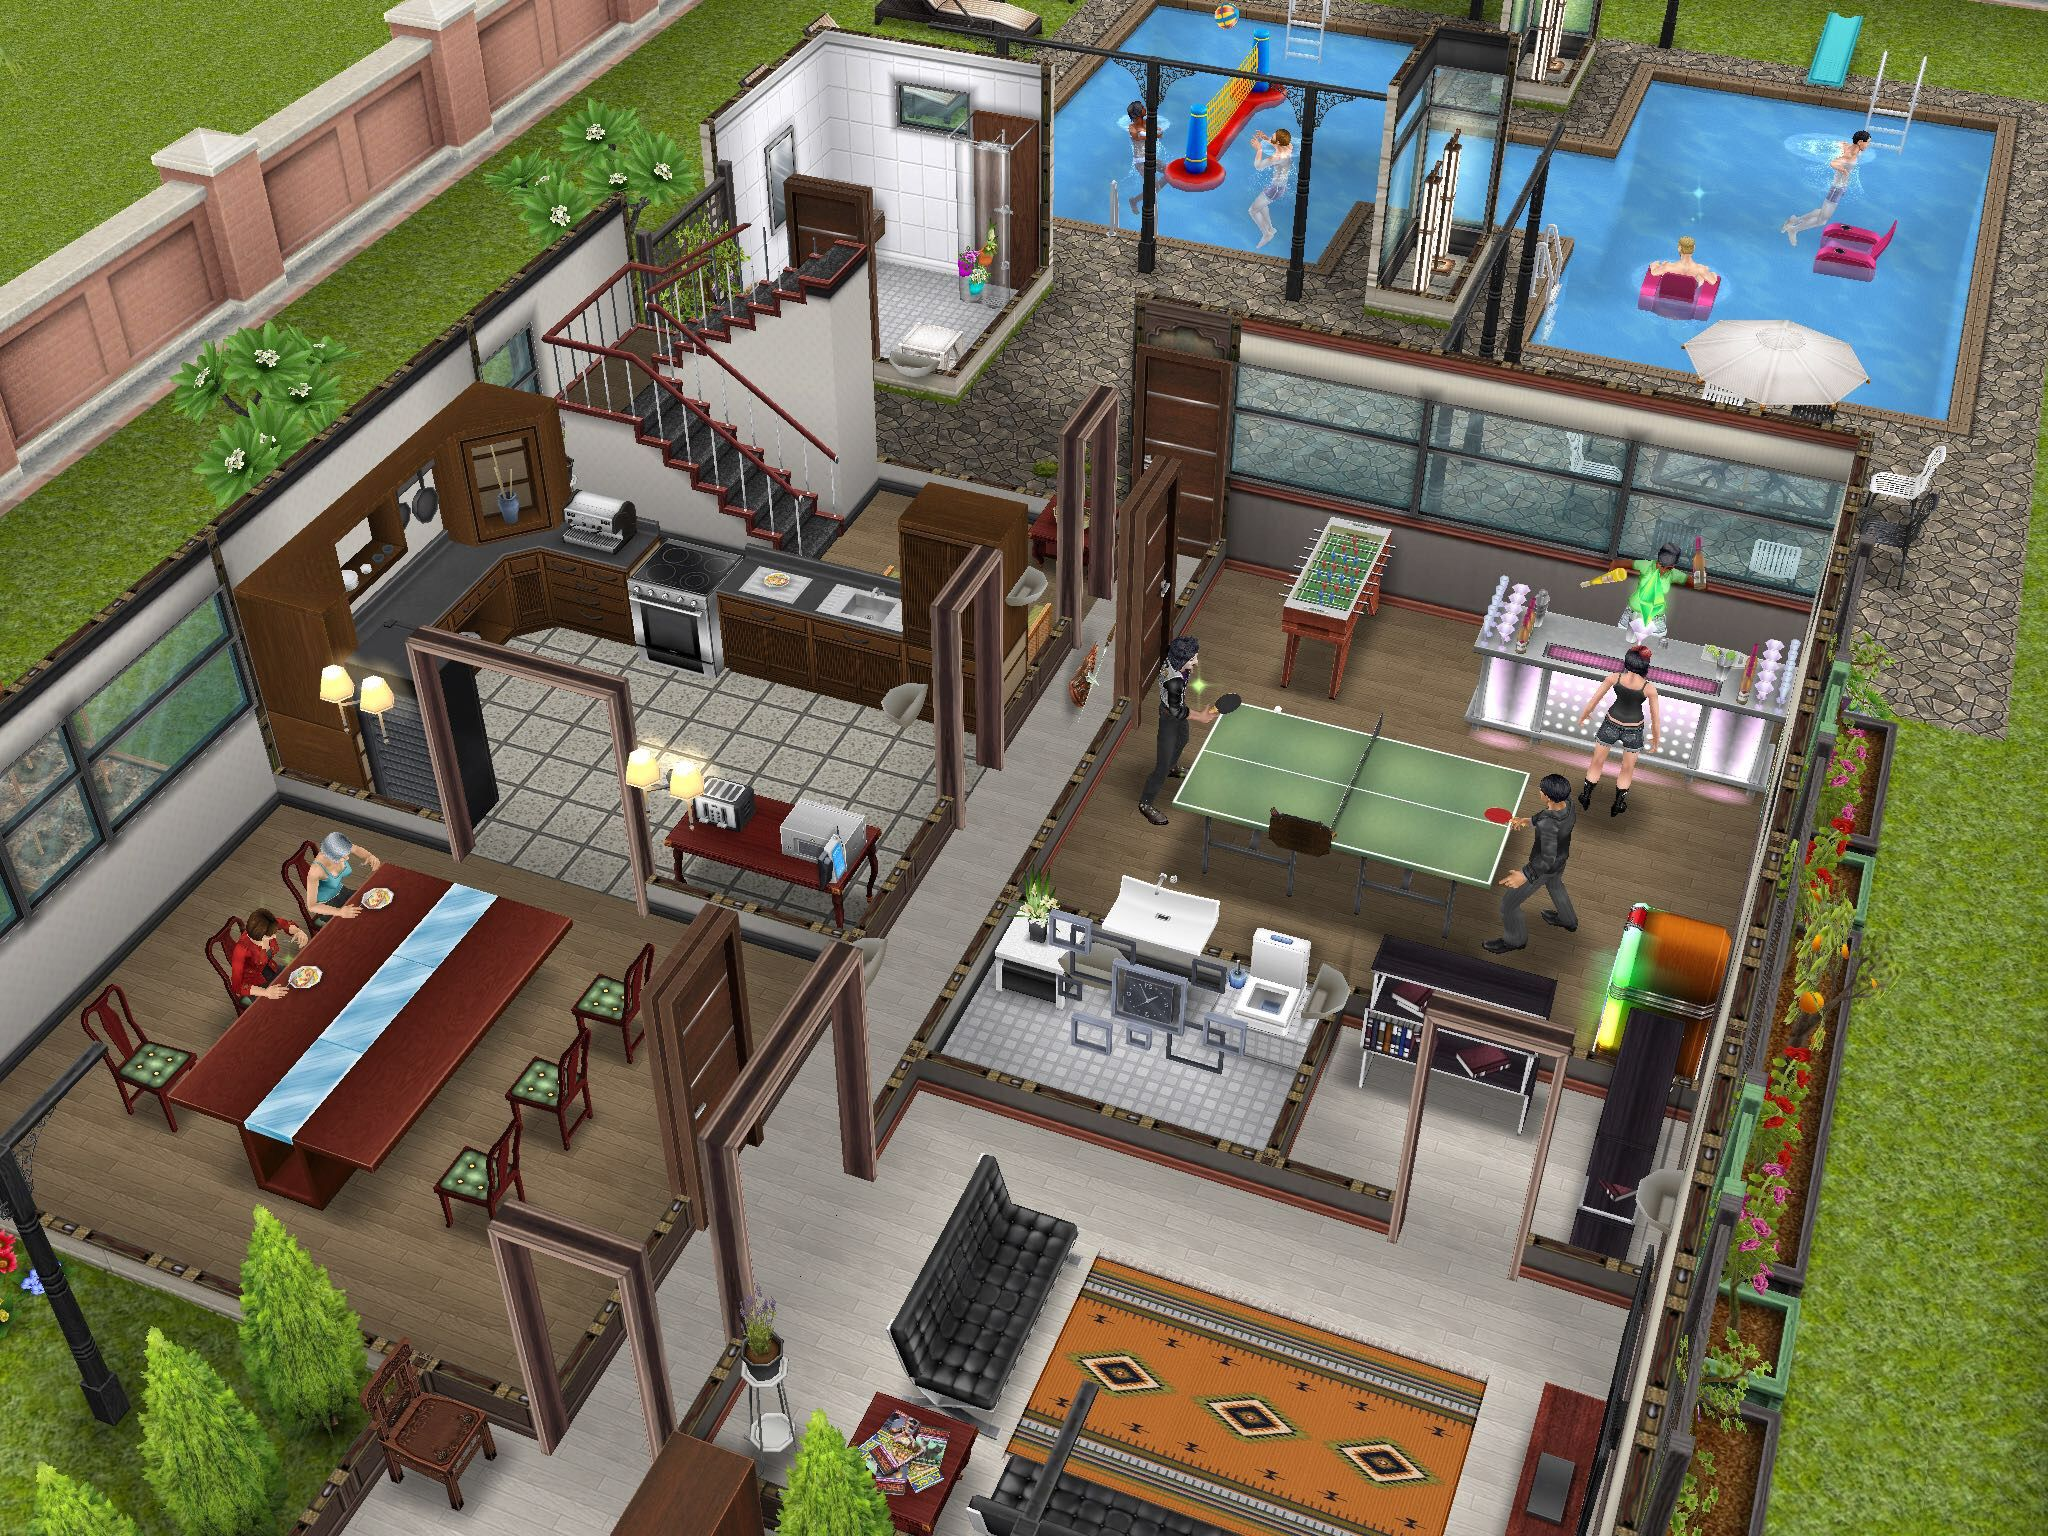 House design sims - Sims Freeplay Huge House Simcity Buildit Entwickler Bauen Traumh User In Die Sims Freeplay